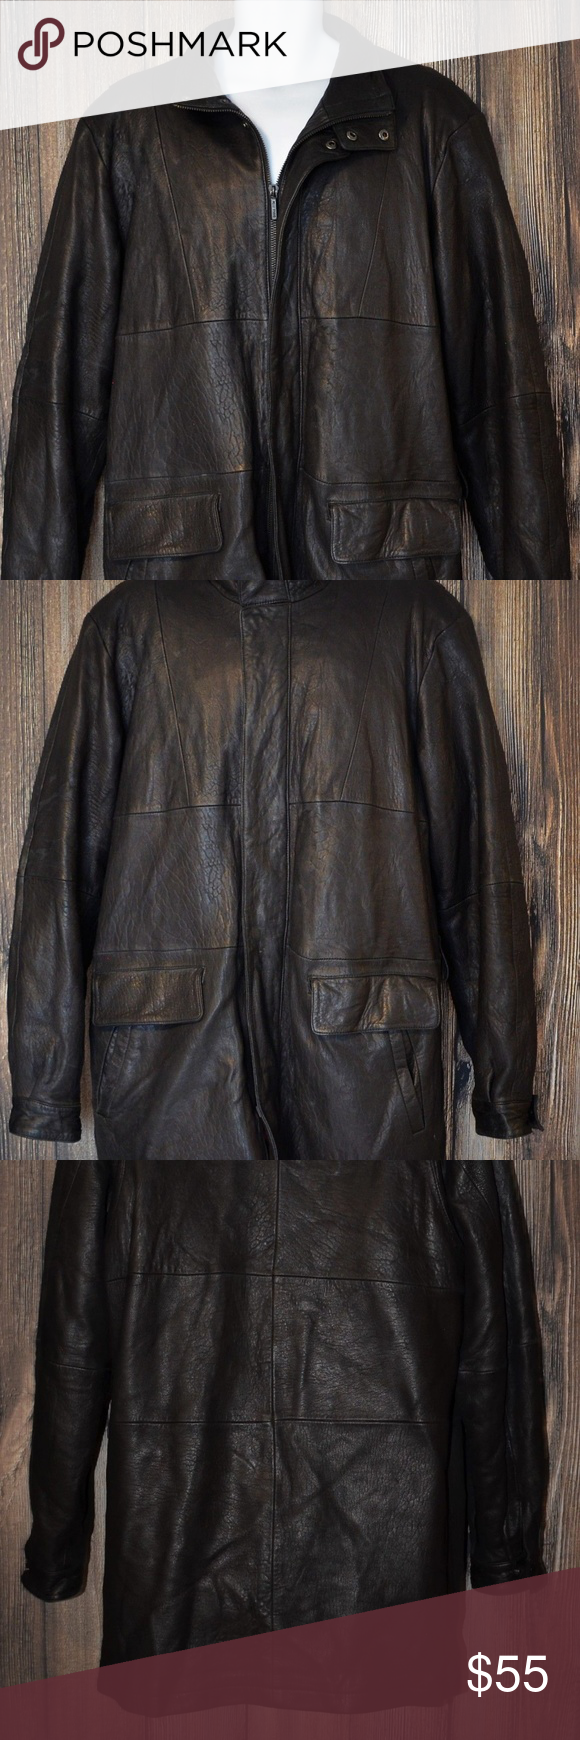 Wilsons Leather Thinsulate Ultra Insulated Jacket Men S Wilson S Leather Pelle Studio Leather Jacket Size Large Tall Insulated Jackets Wilsons Leather Jackets [ 1740 x 580 Pixel ]